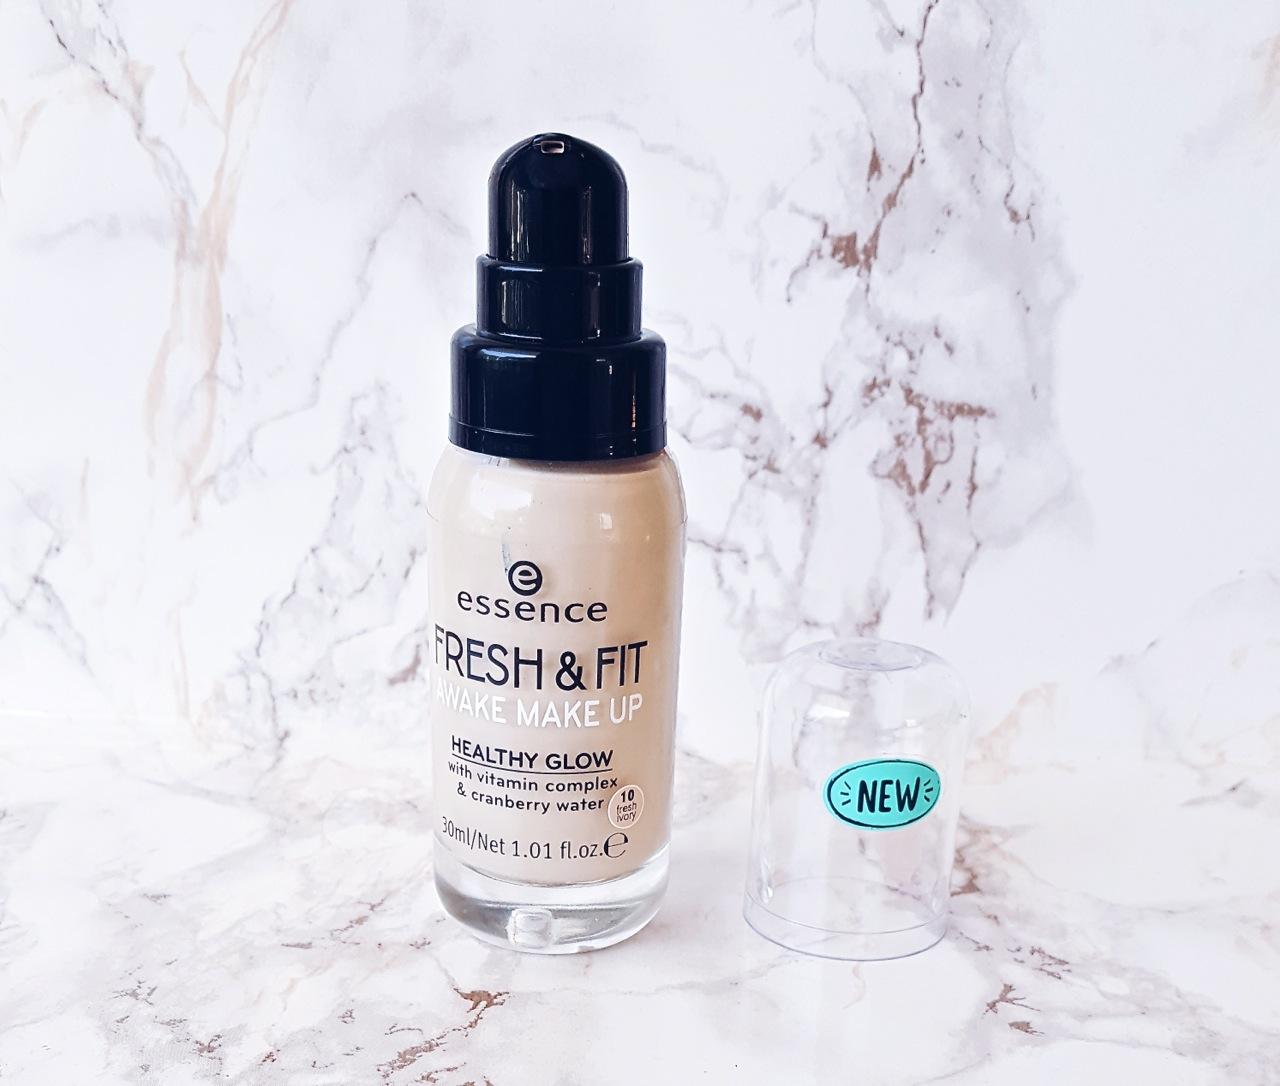 Essence Fresh & Fit Awake Makeup